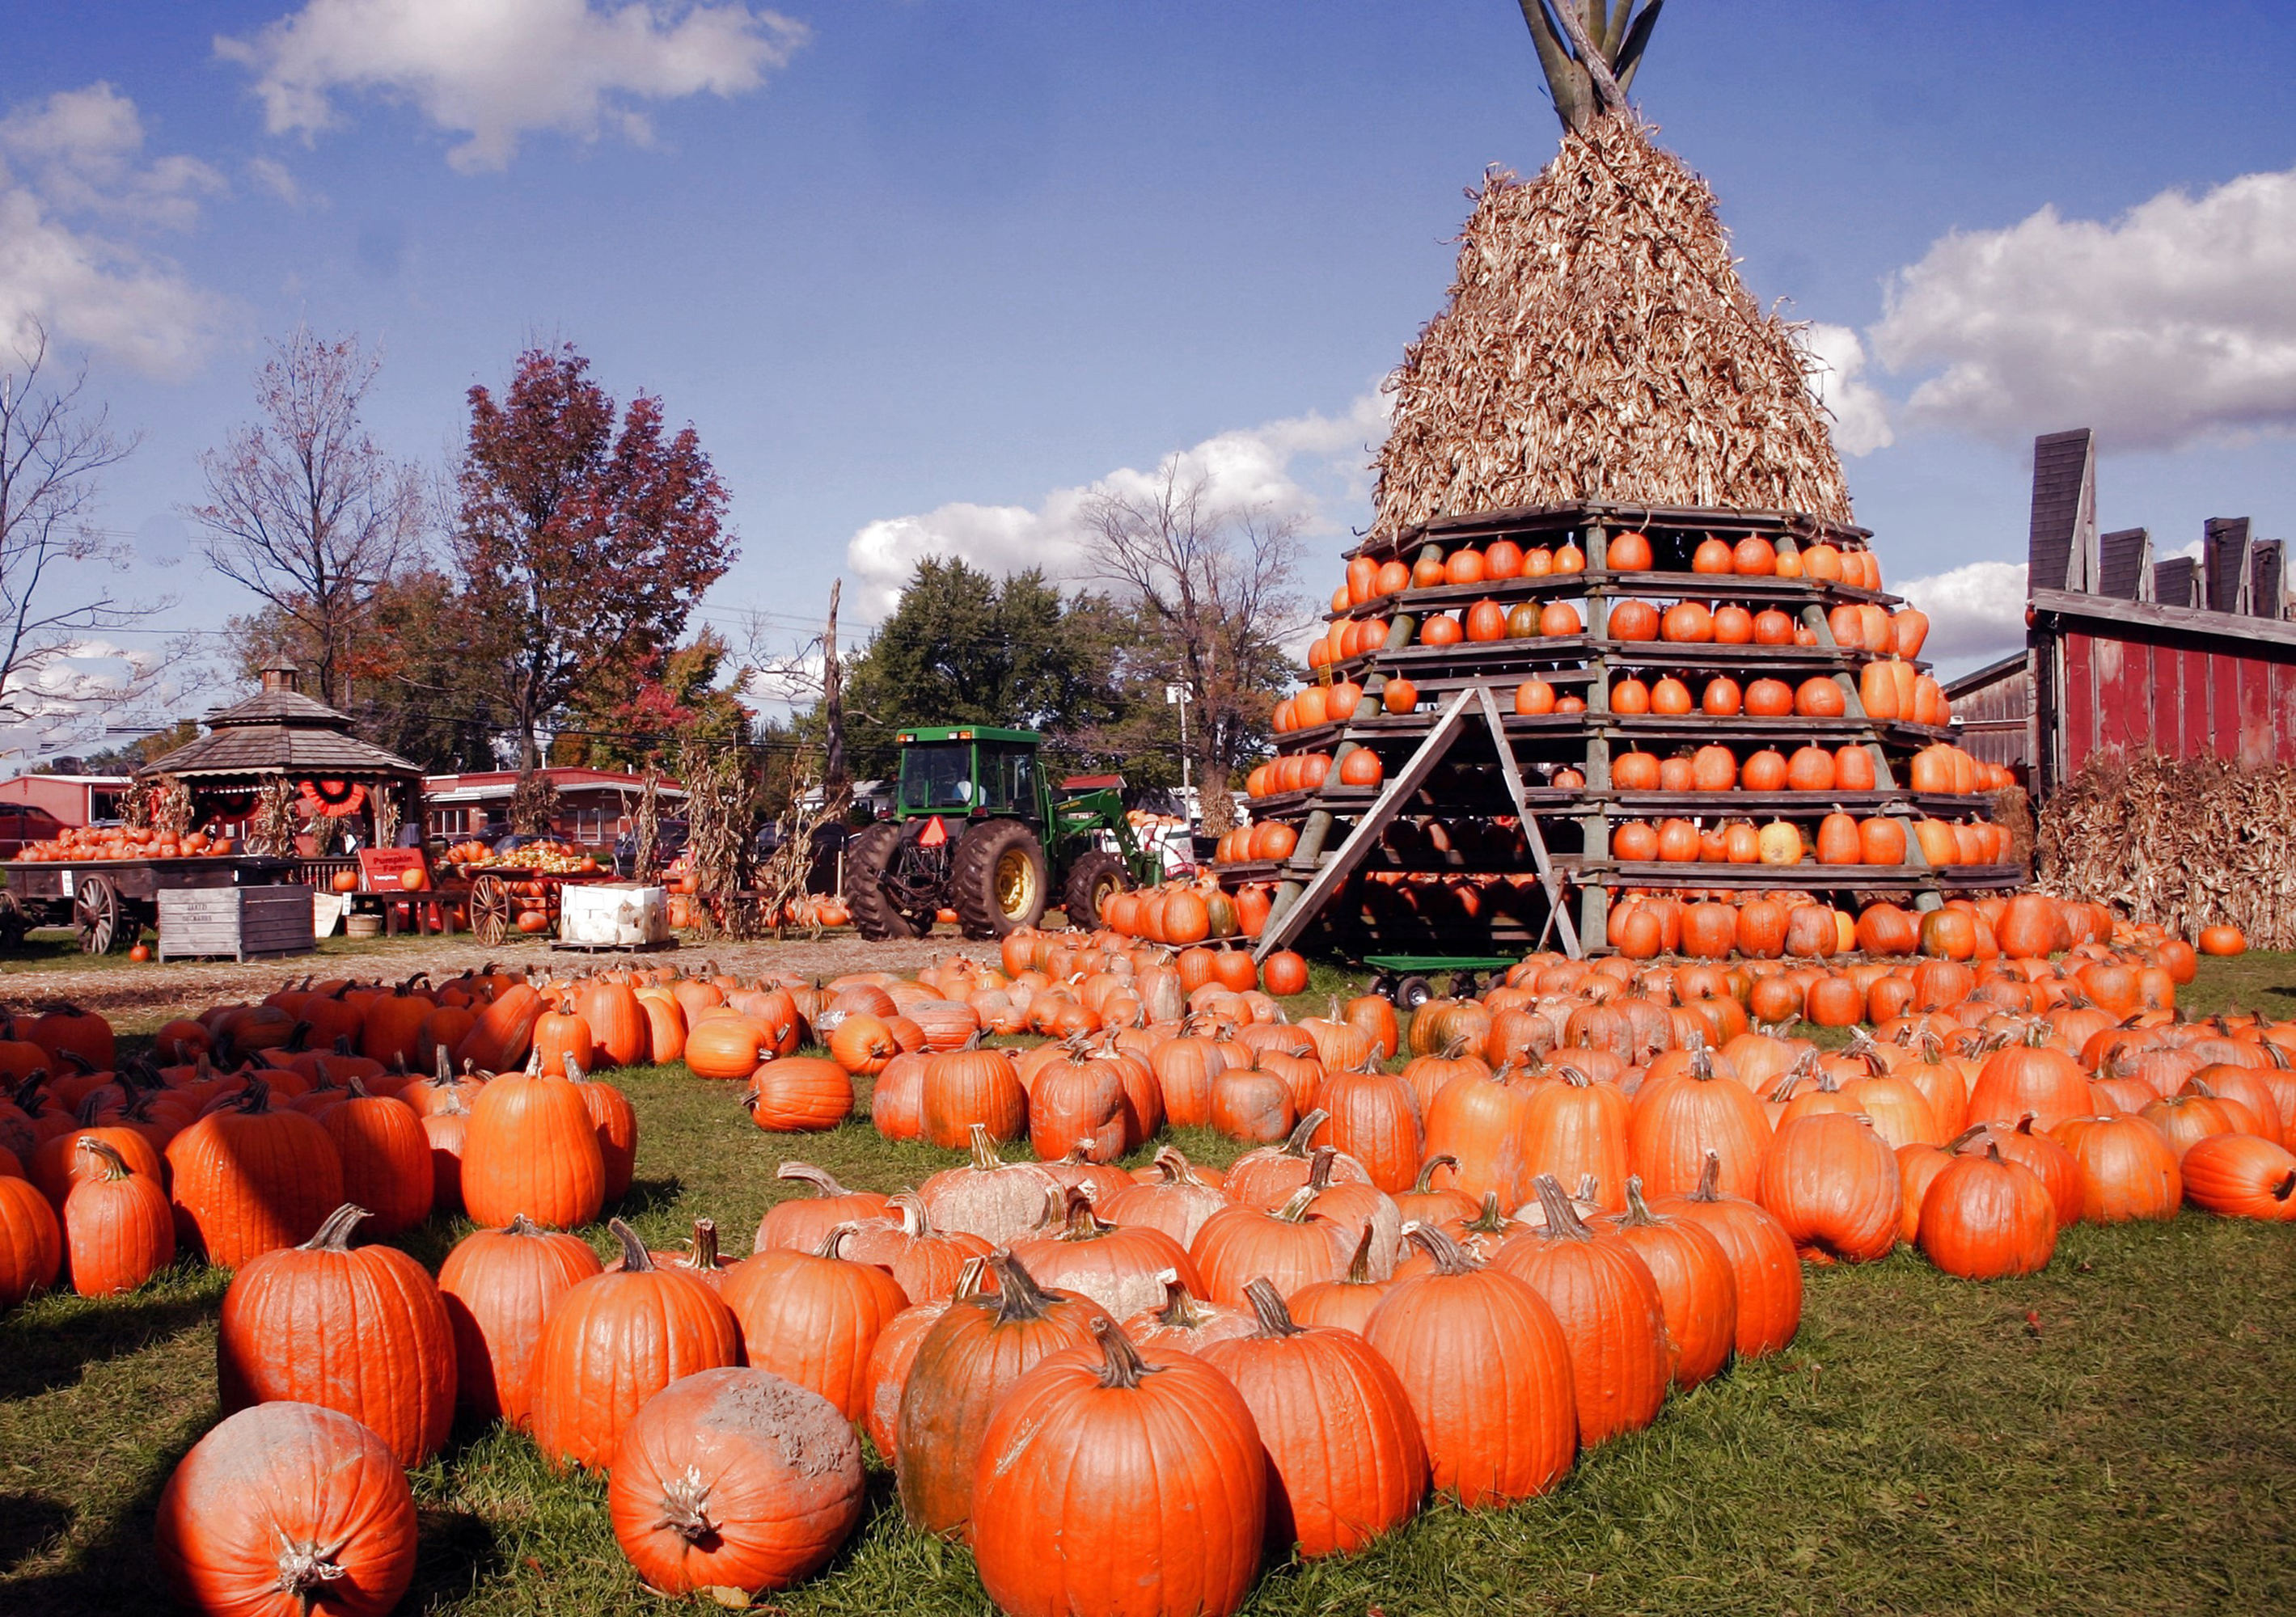 A Pumpkin Hut at the Great Pumpkin Festival